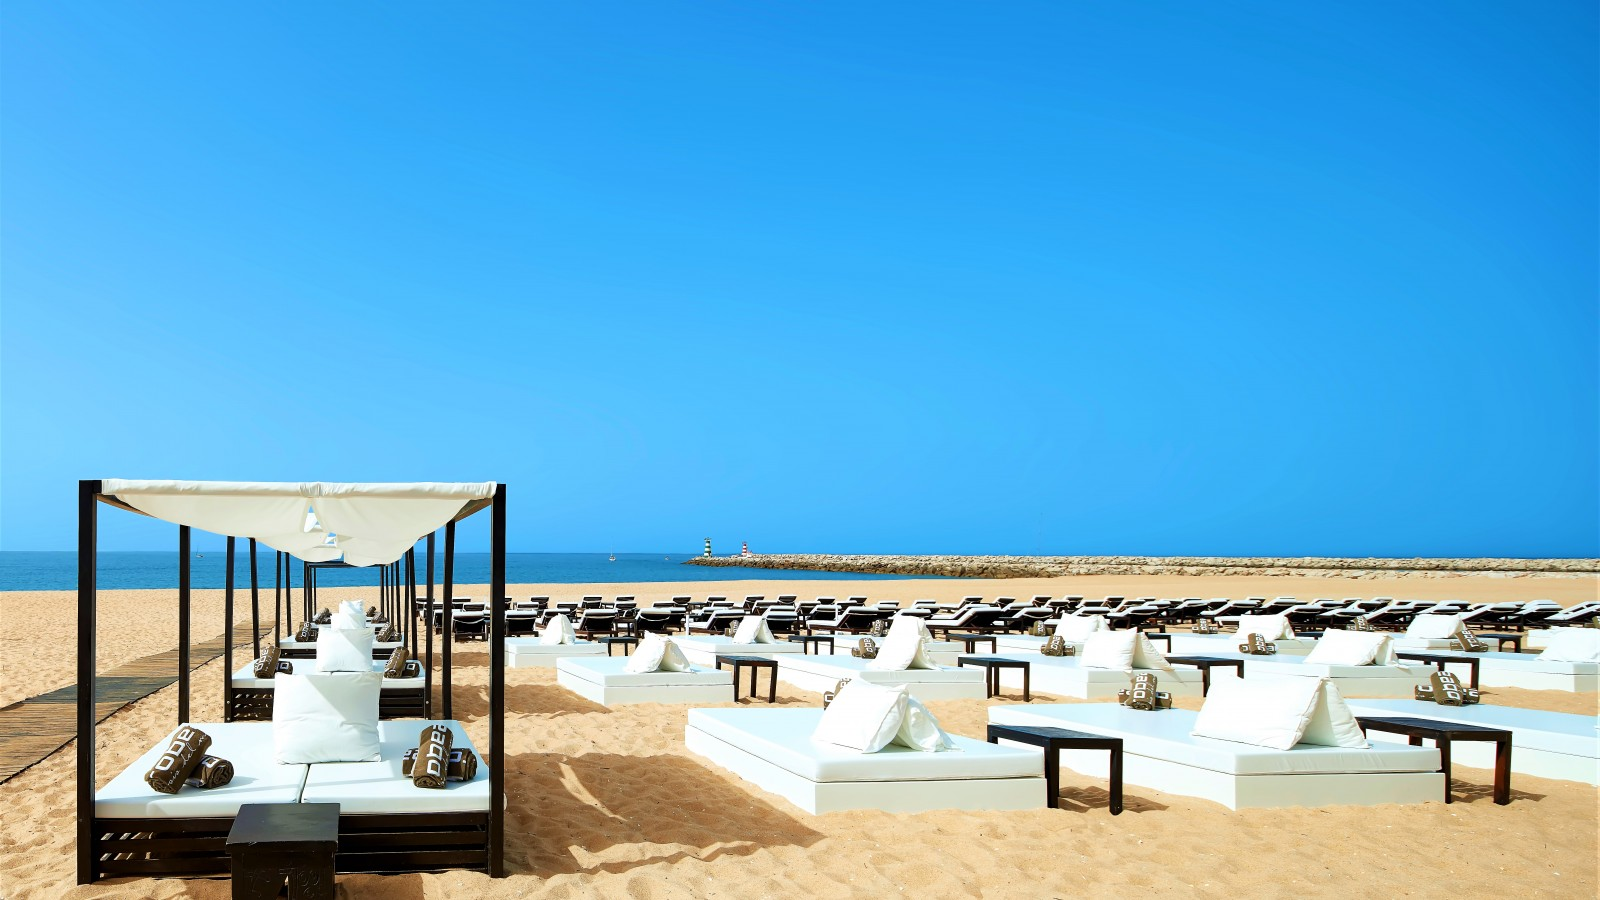 Vilamoura is a lavish resort in the Algarve, with stylish restaurants, bars and beach clubs